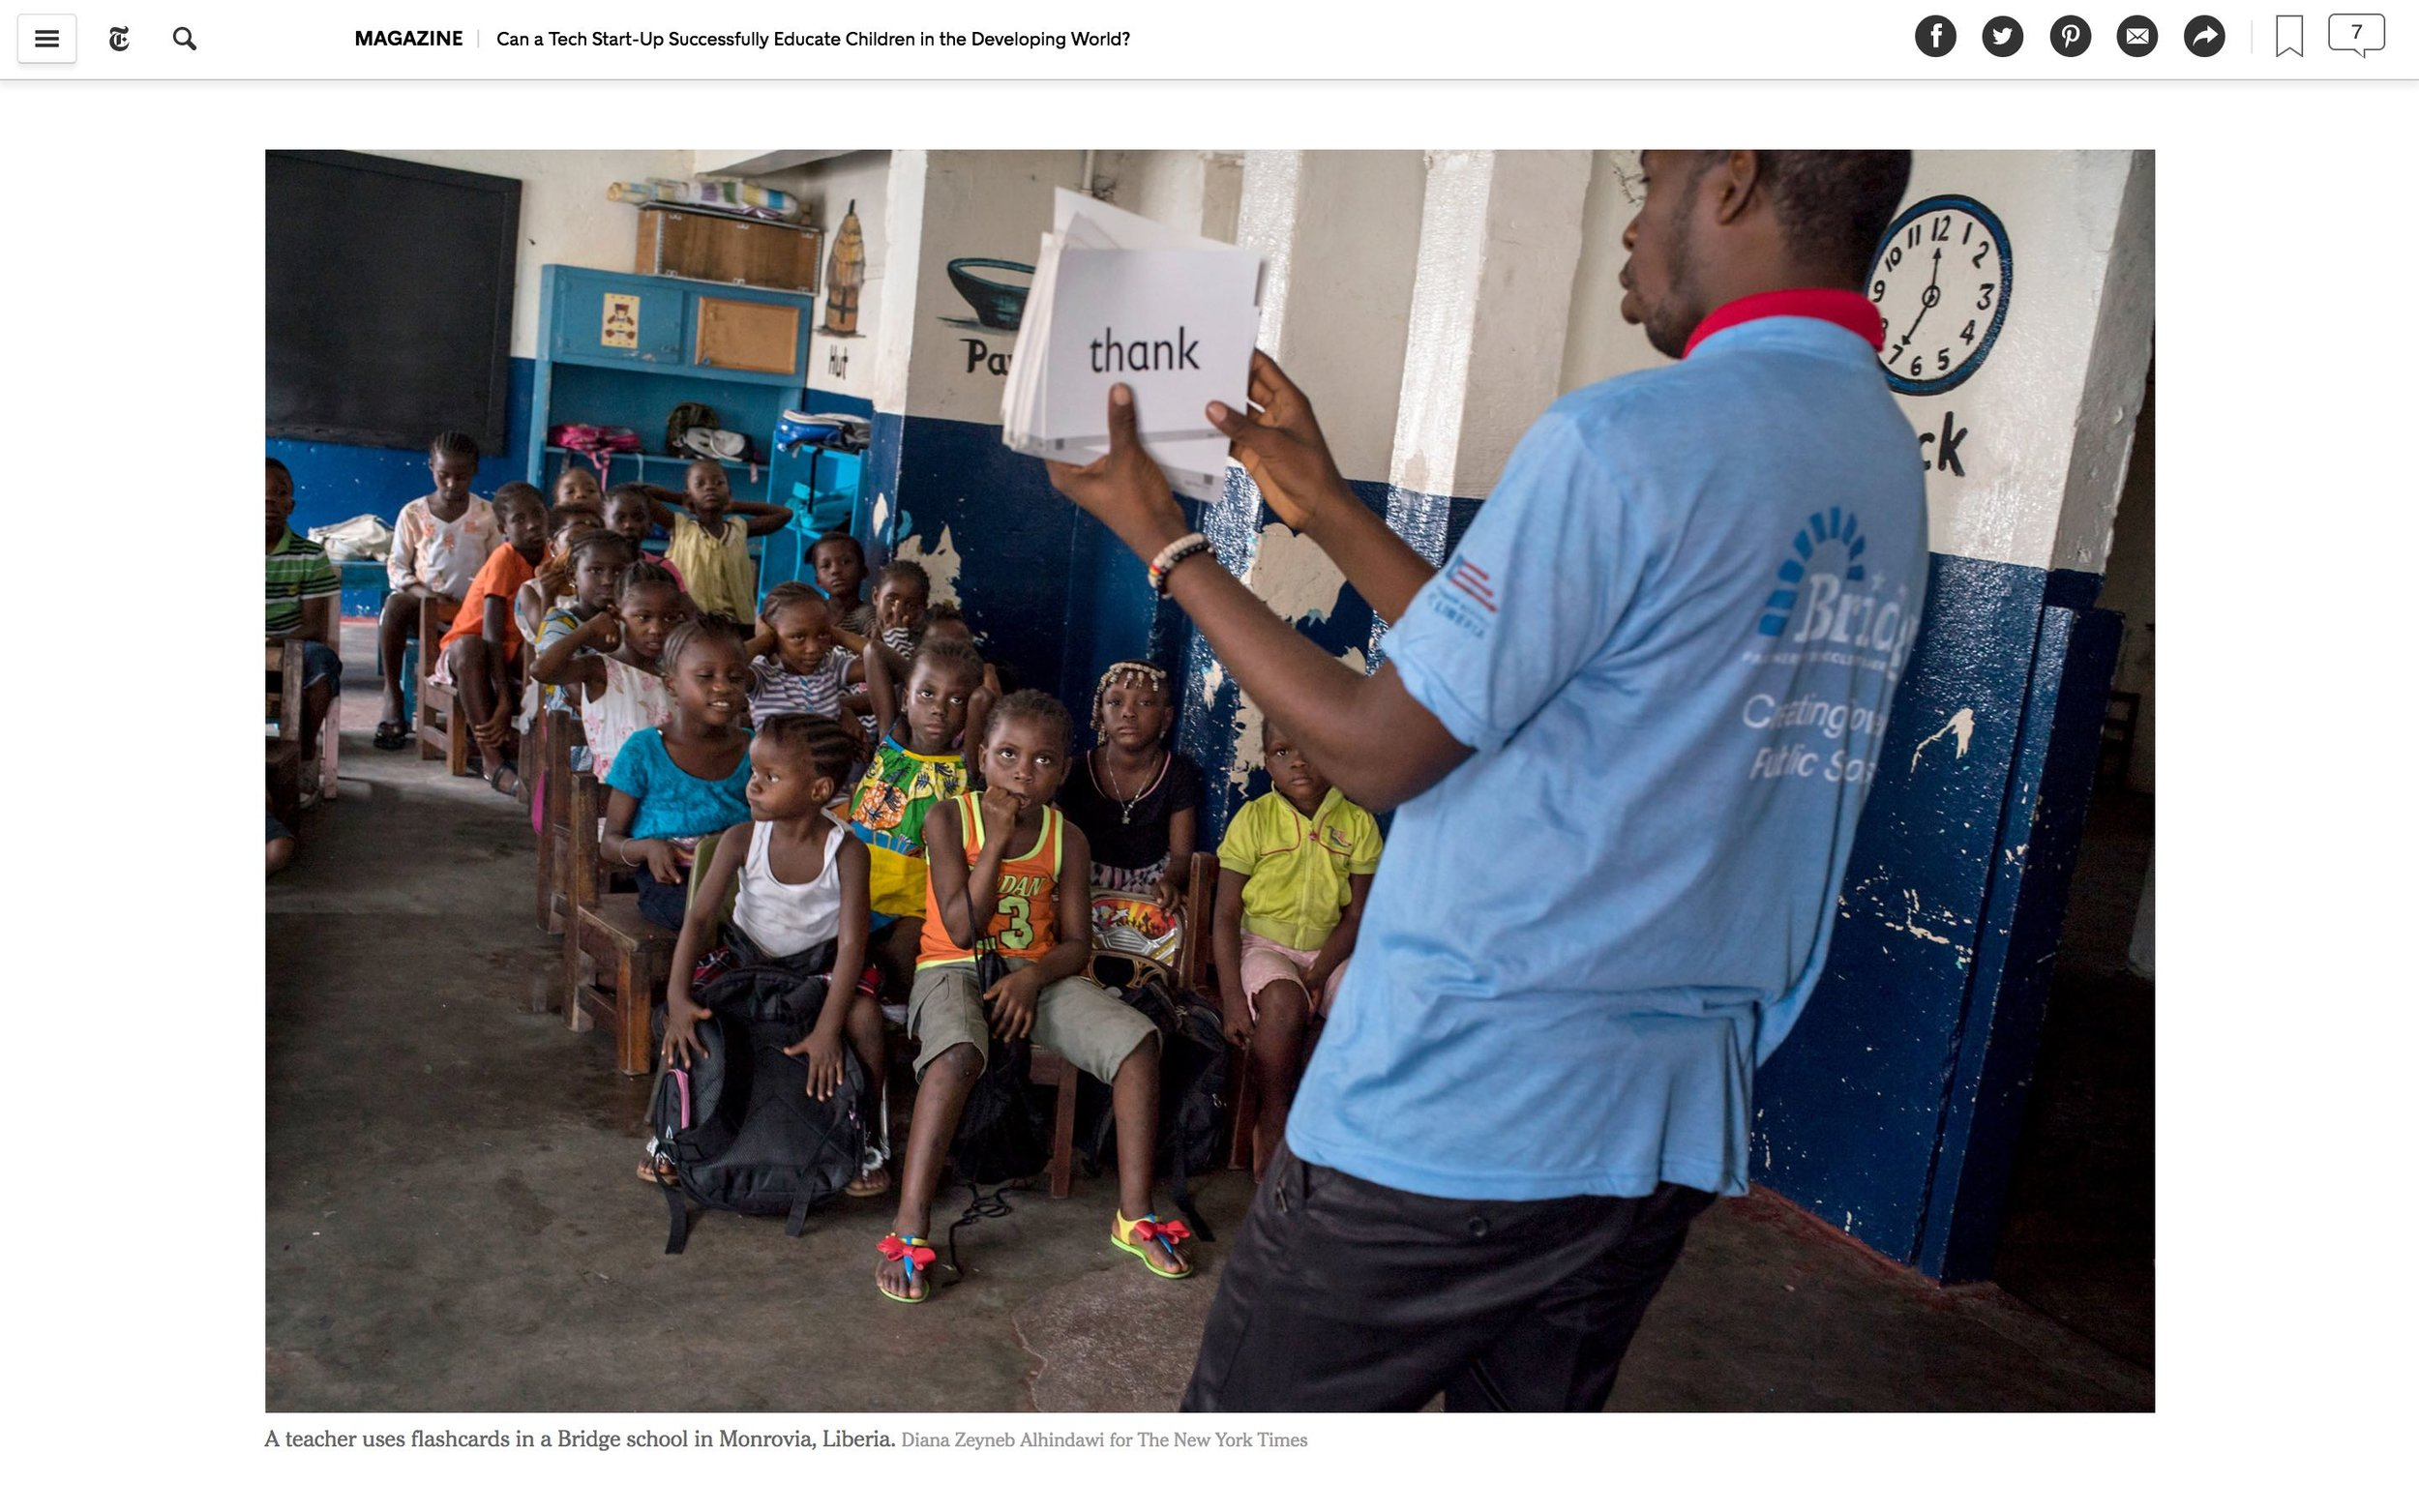 CLICK on title for full article     Can a tech start-up successfully educate children in the developing world?  | The New York Times Magazine, Jun 27, 2017   (Image 4 of 9)